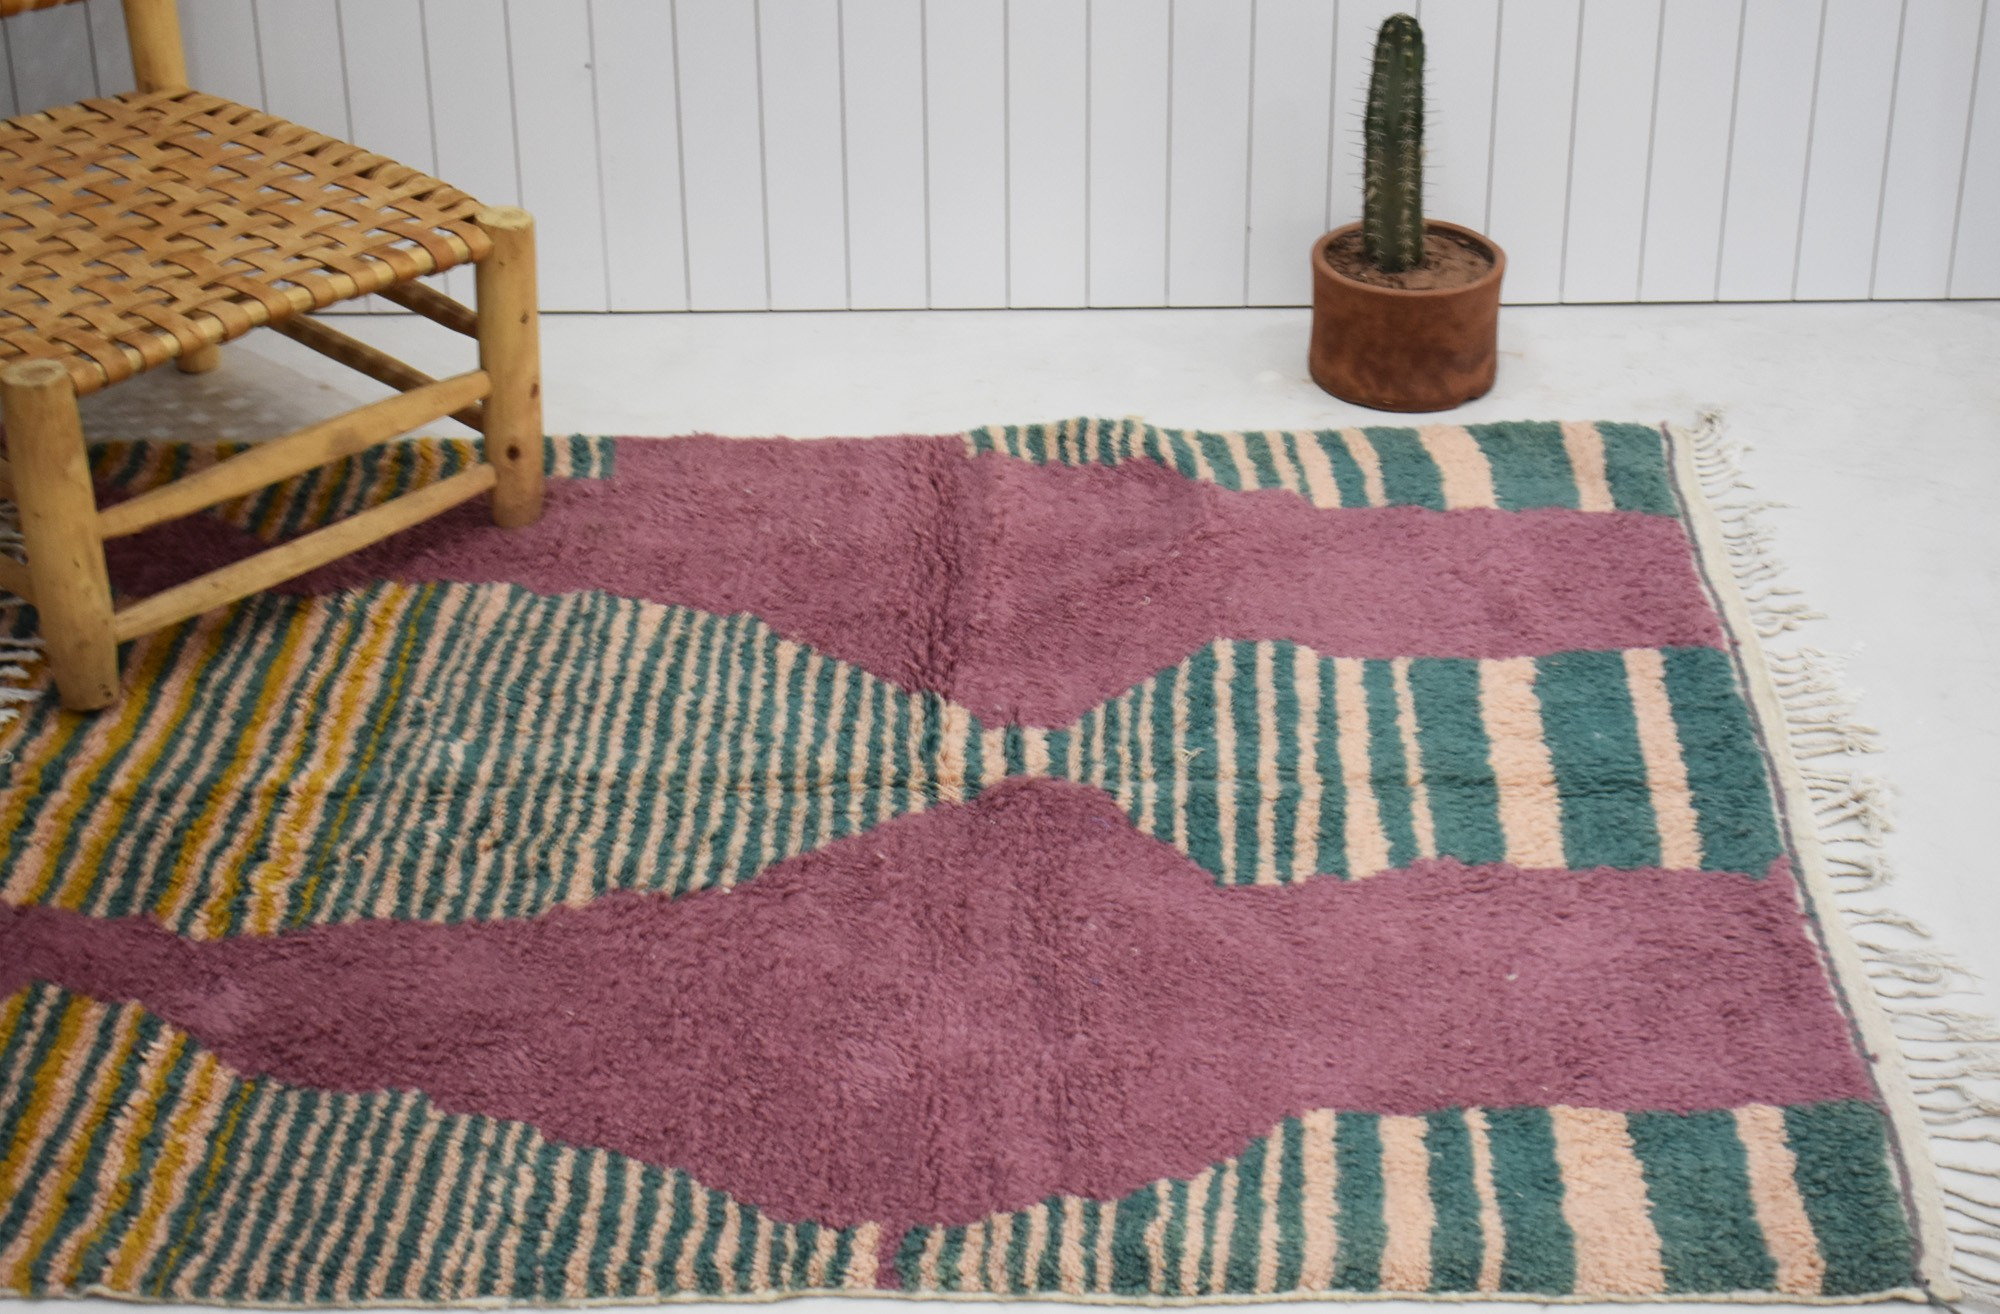 Pink background rug and silhouette patterns in green, yellow and pale pink